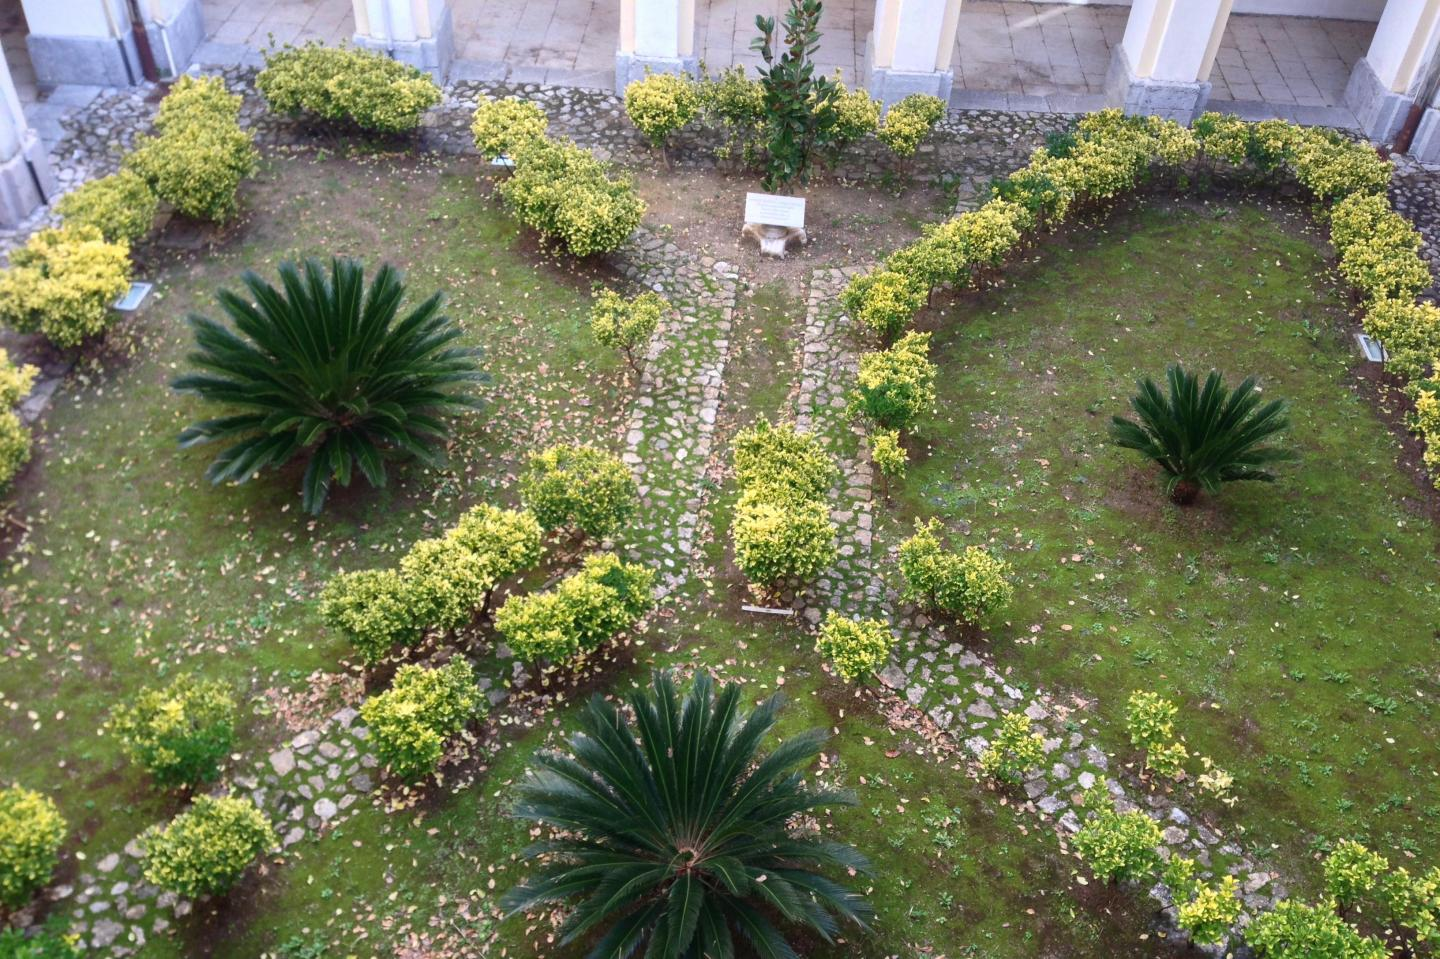 The Garden of the Righteous in Campagna.